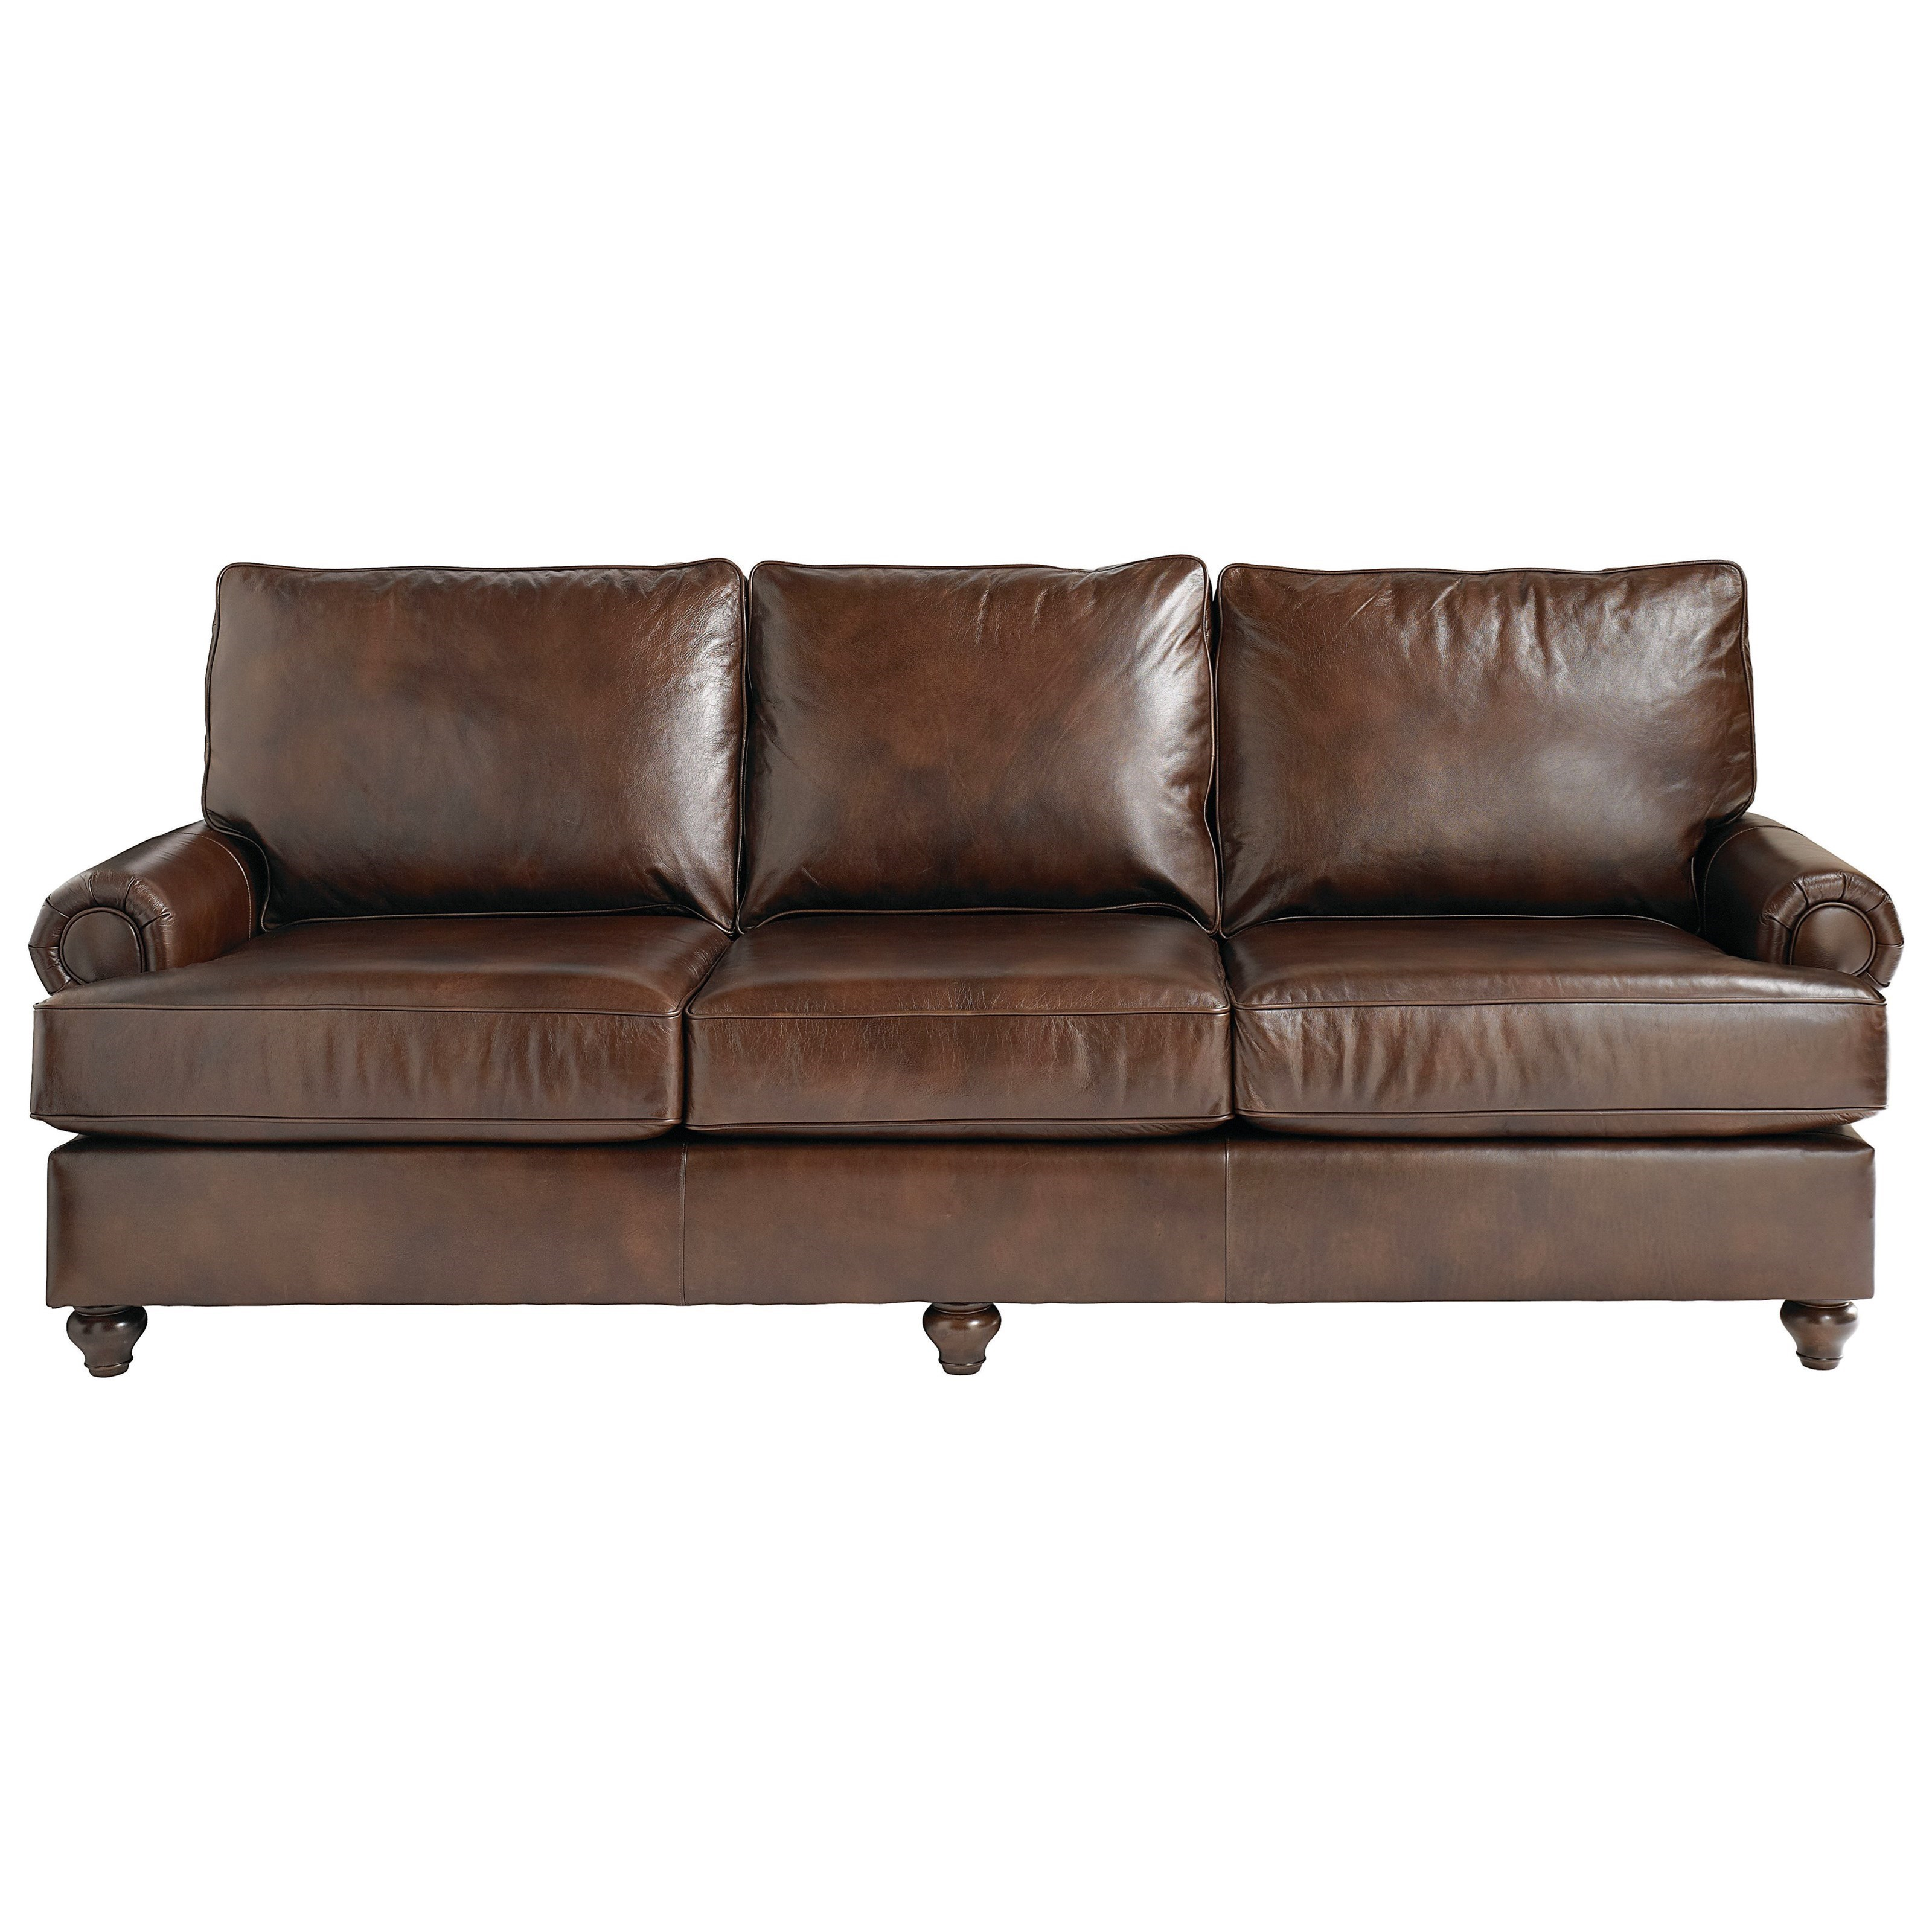 Bassett Montague Casual Sofa With Rolled Arms